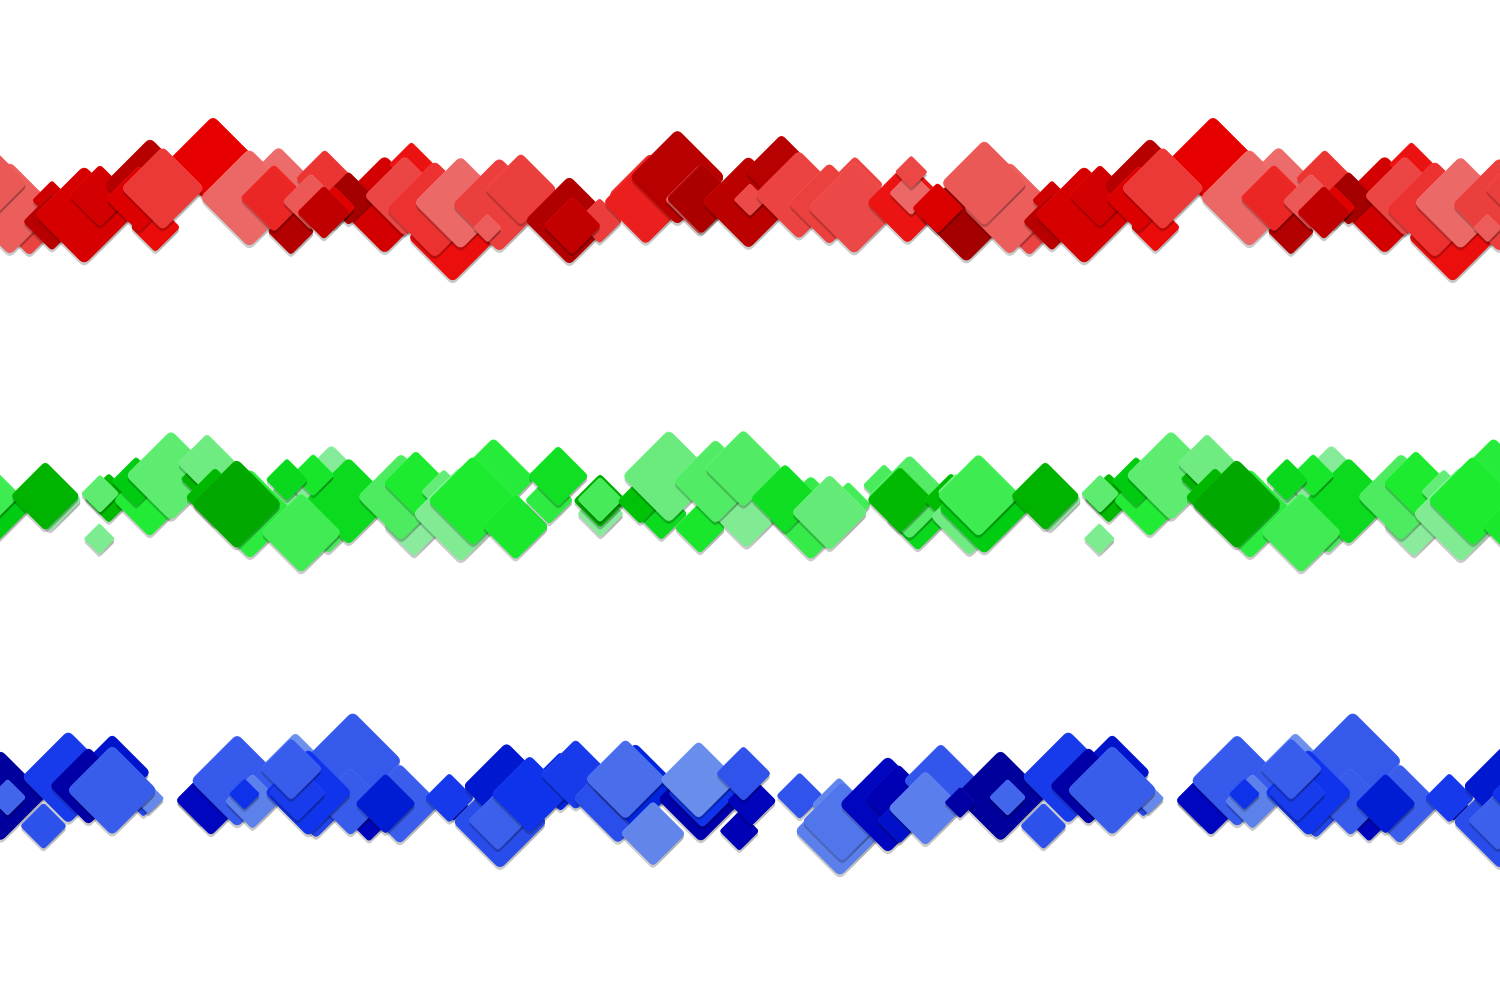 24 Tileable Divider Lines (AI, EPS, JPG 5000x5000) example image 2